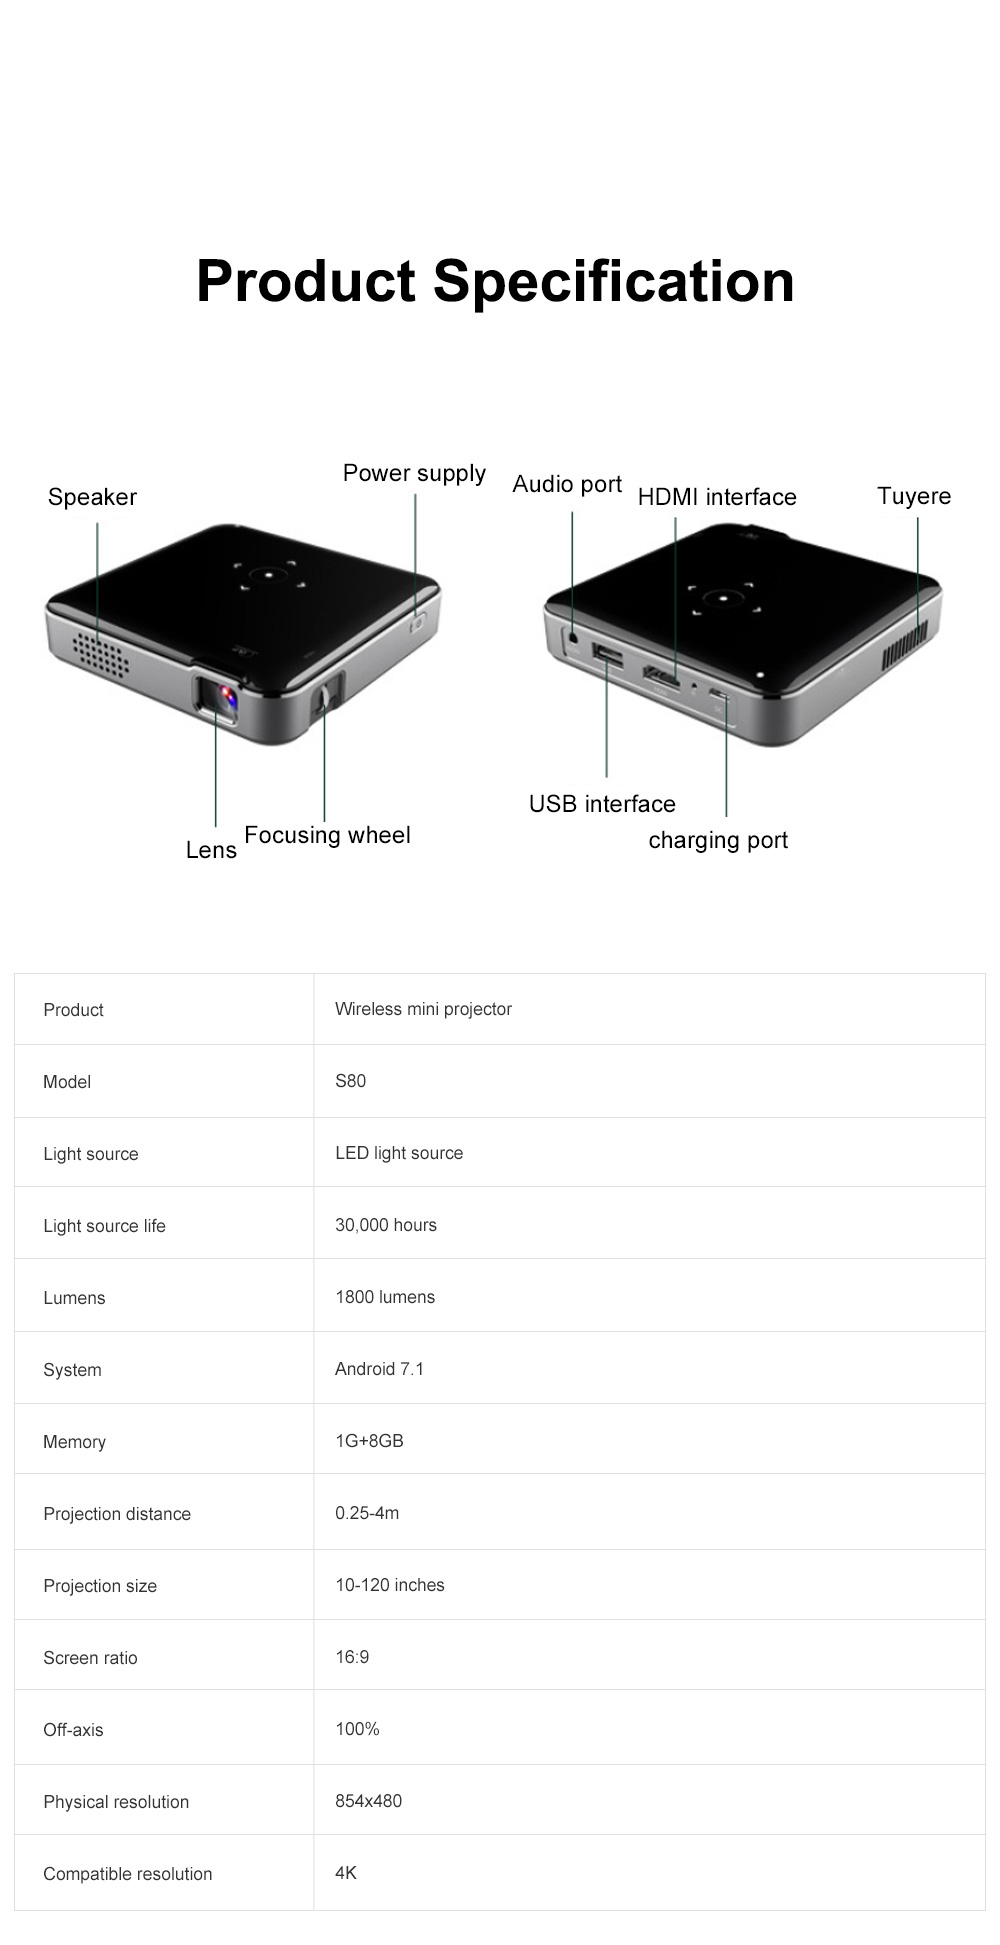 S80 Android Smart Projector HD 1080P 854x480 Wireless Miracast Airplay Wifi Display Smartphone Mini Pocket Projector 12